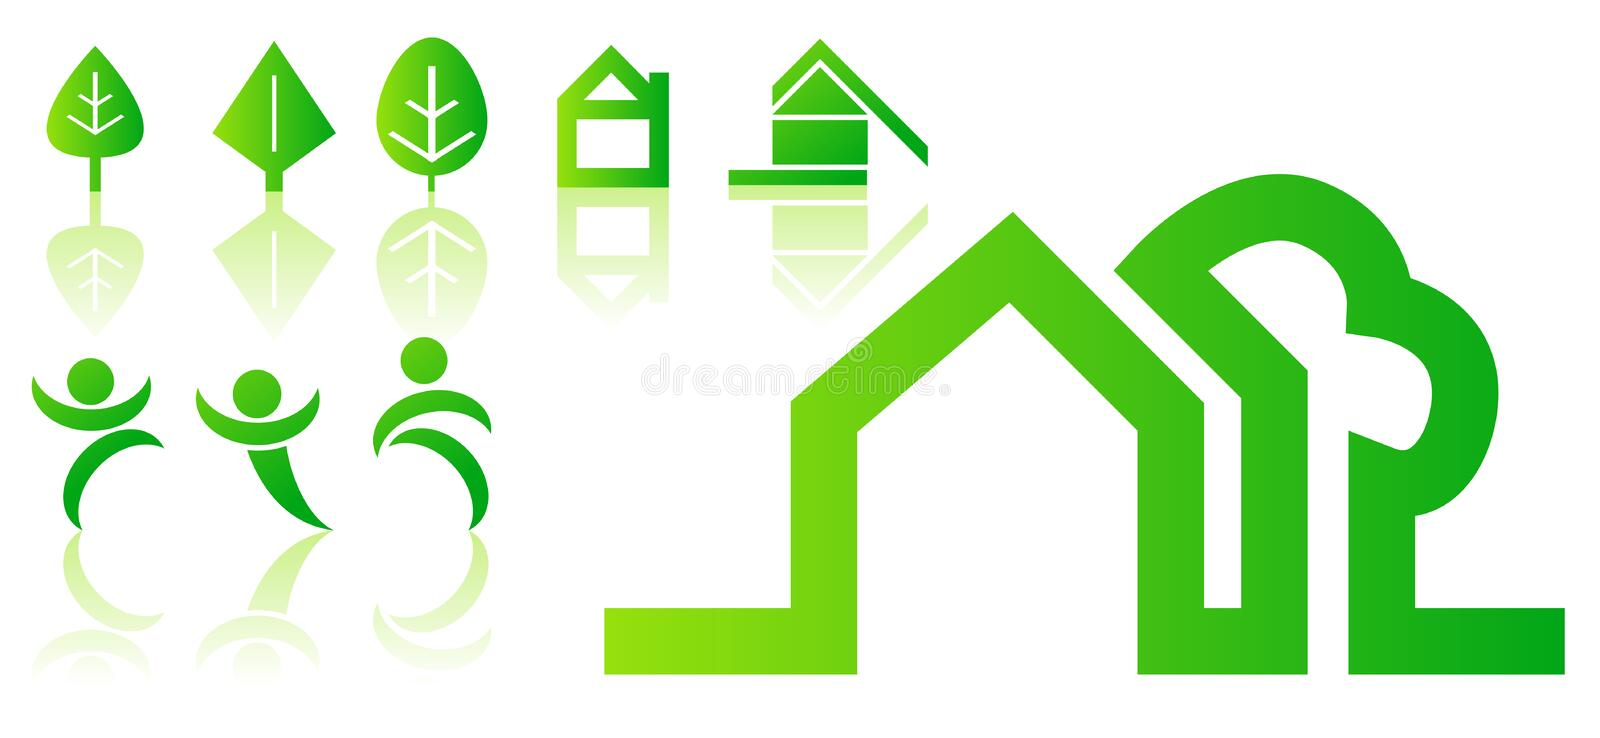 Green vector symbols stock illustration